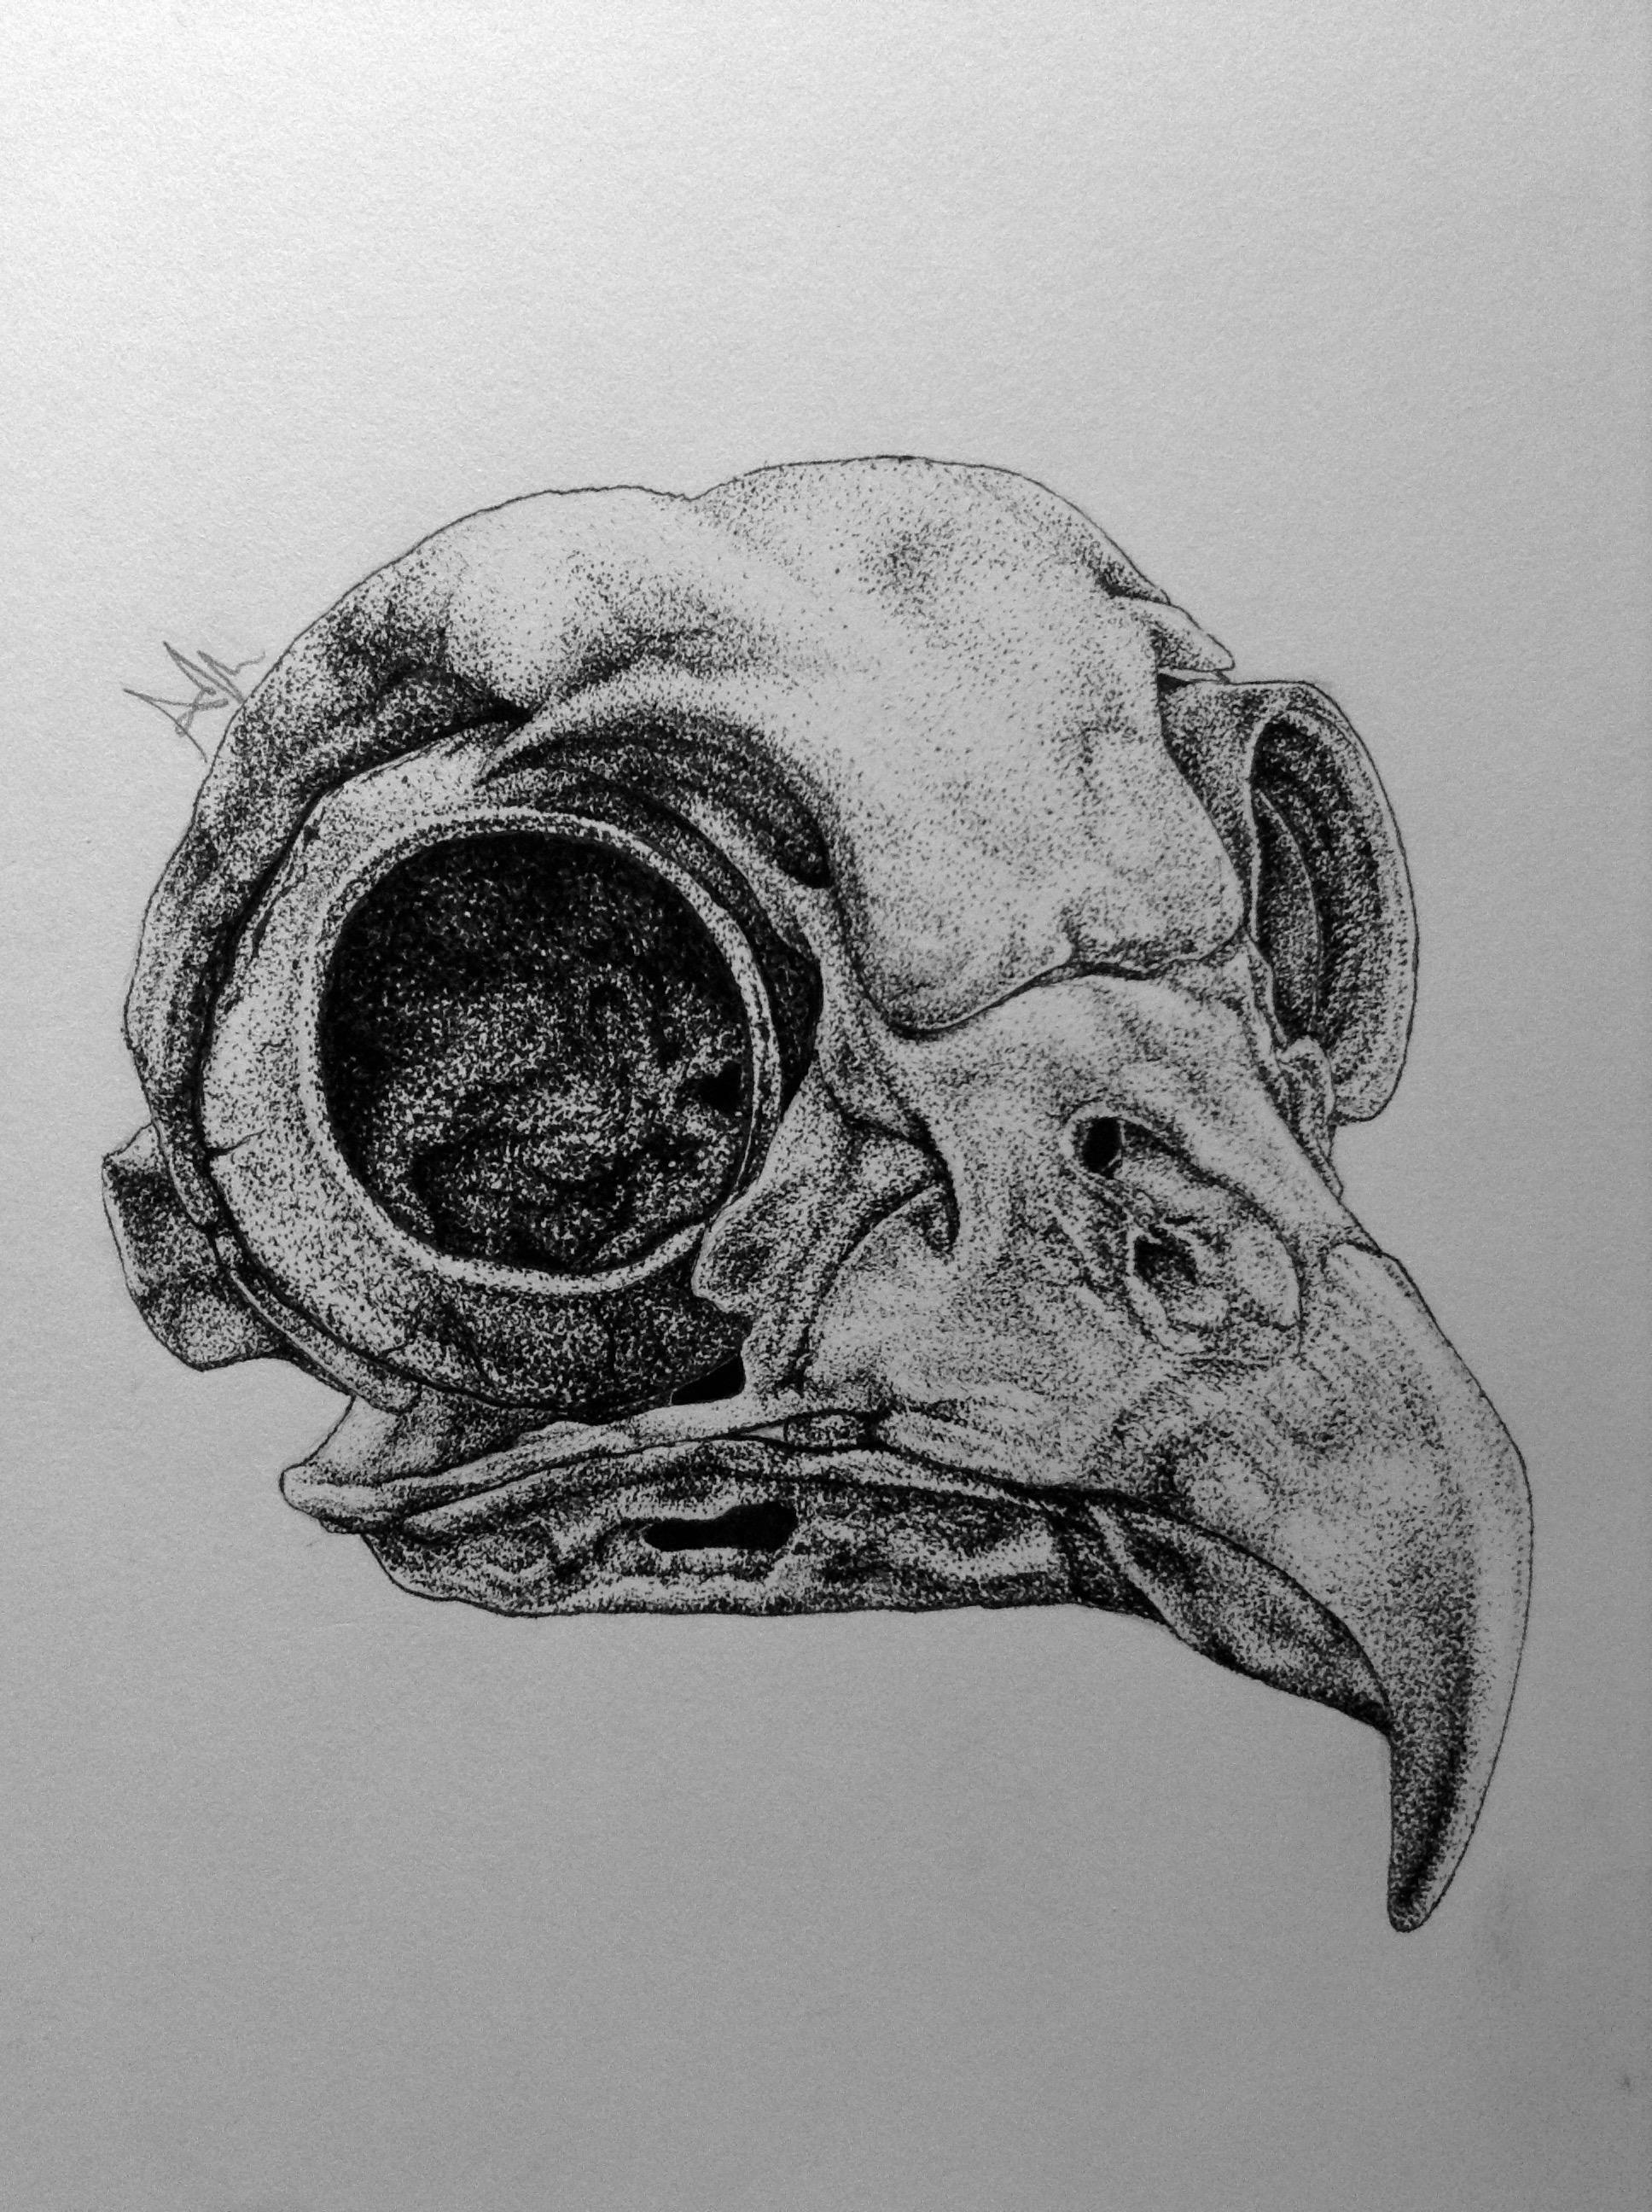 Drawn raven skull More and 5x10cm will an